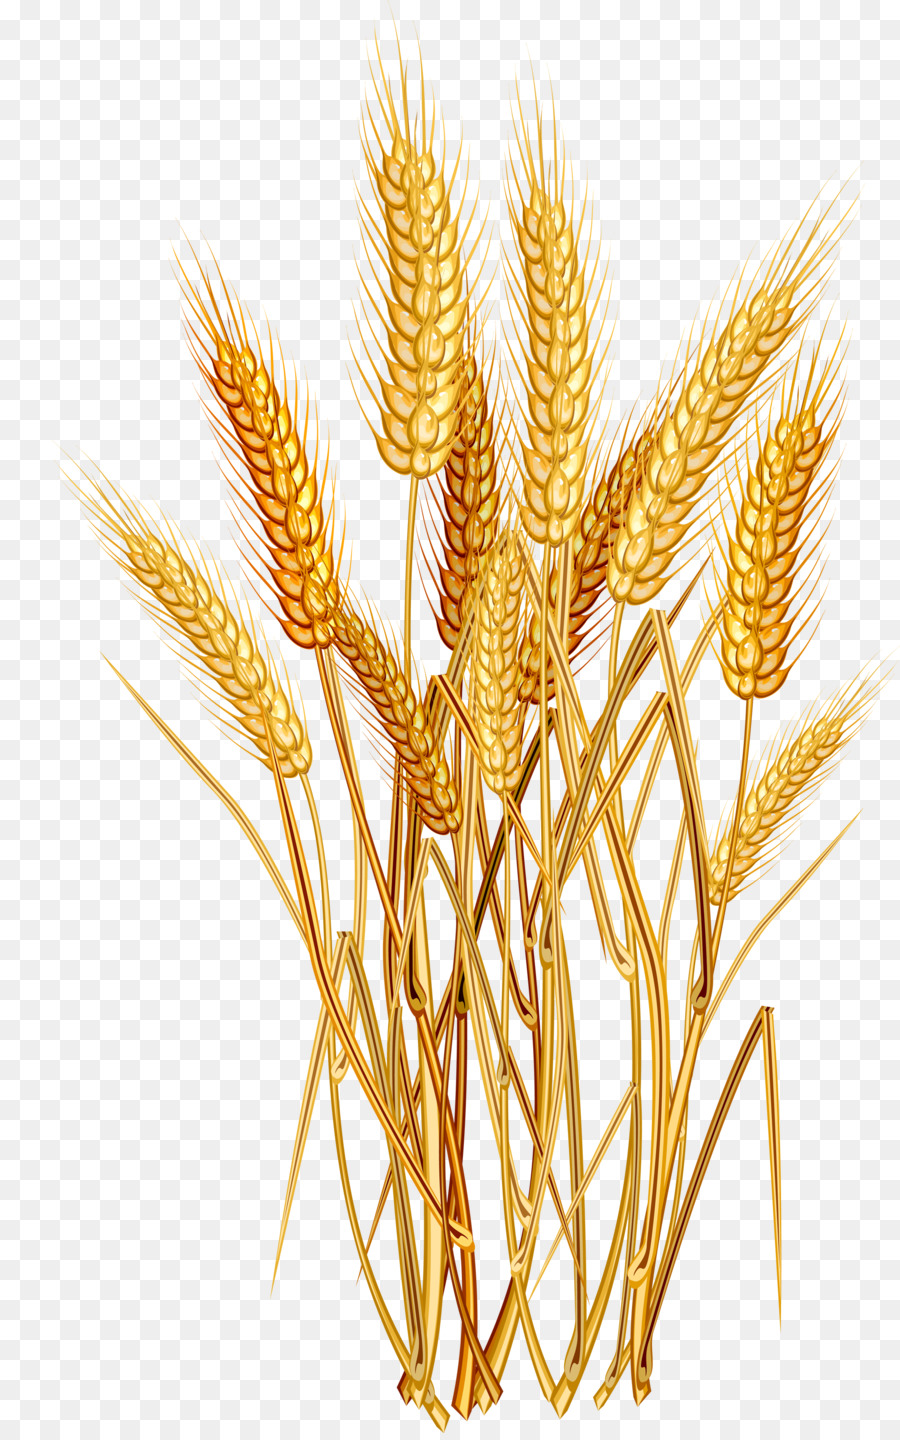 Common wheat ear clip. Cereal clipart cereal grain